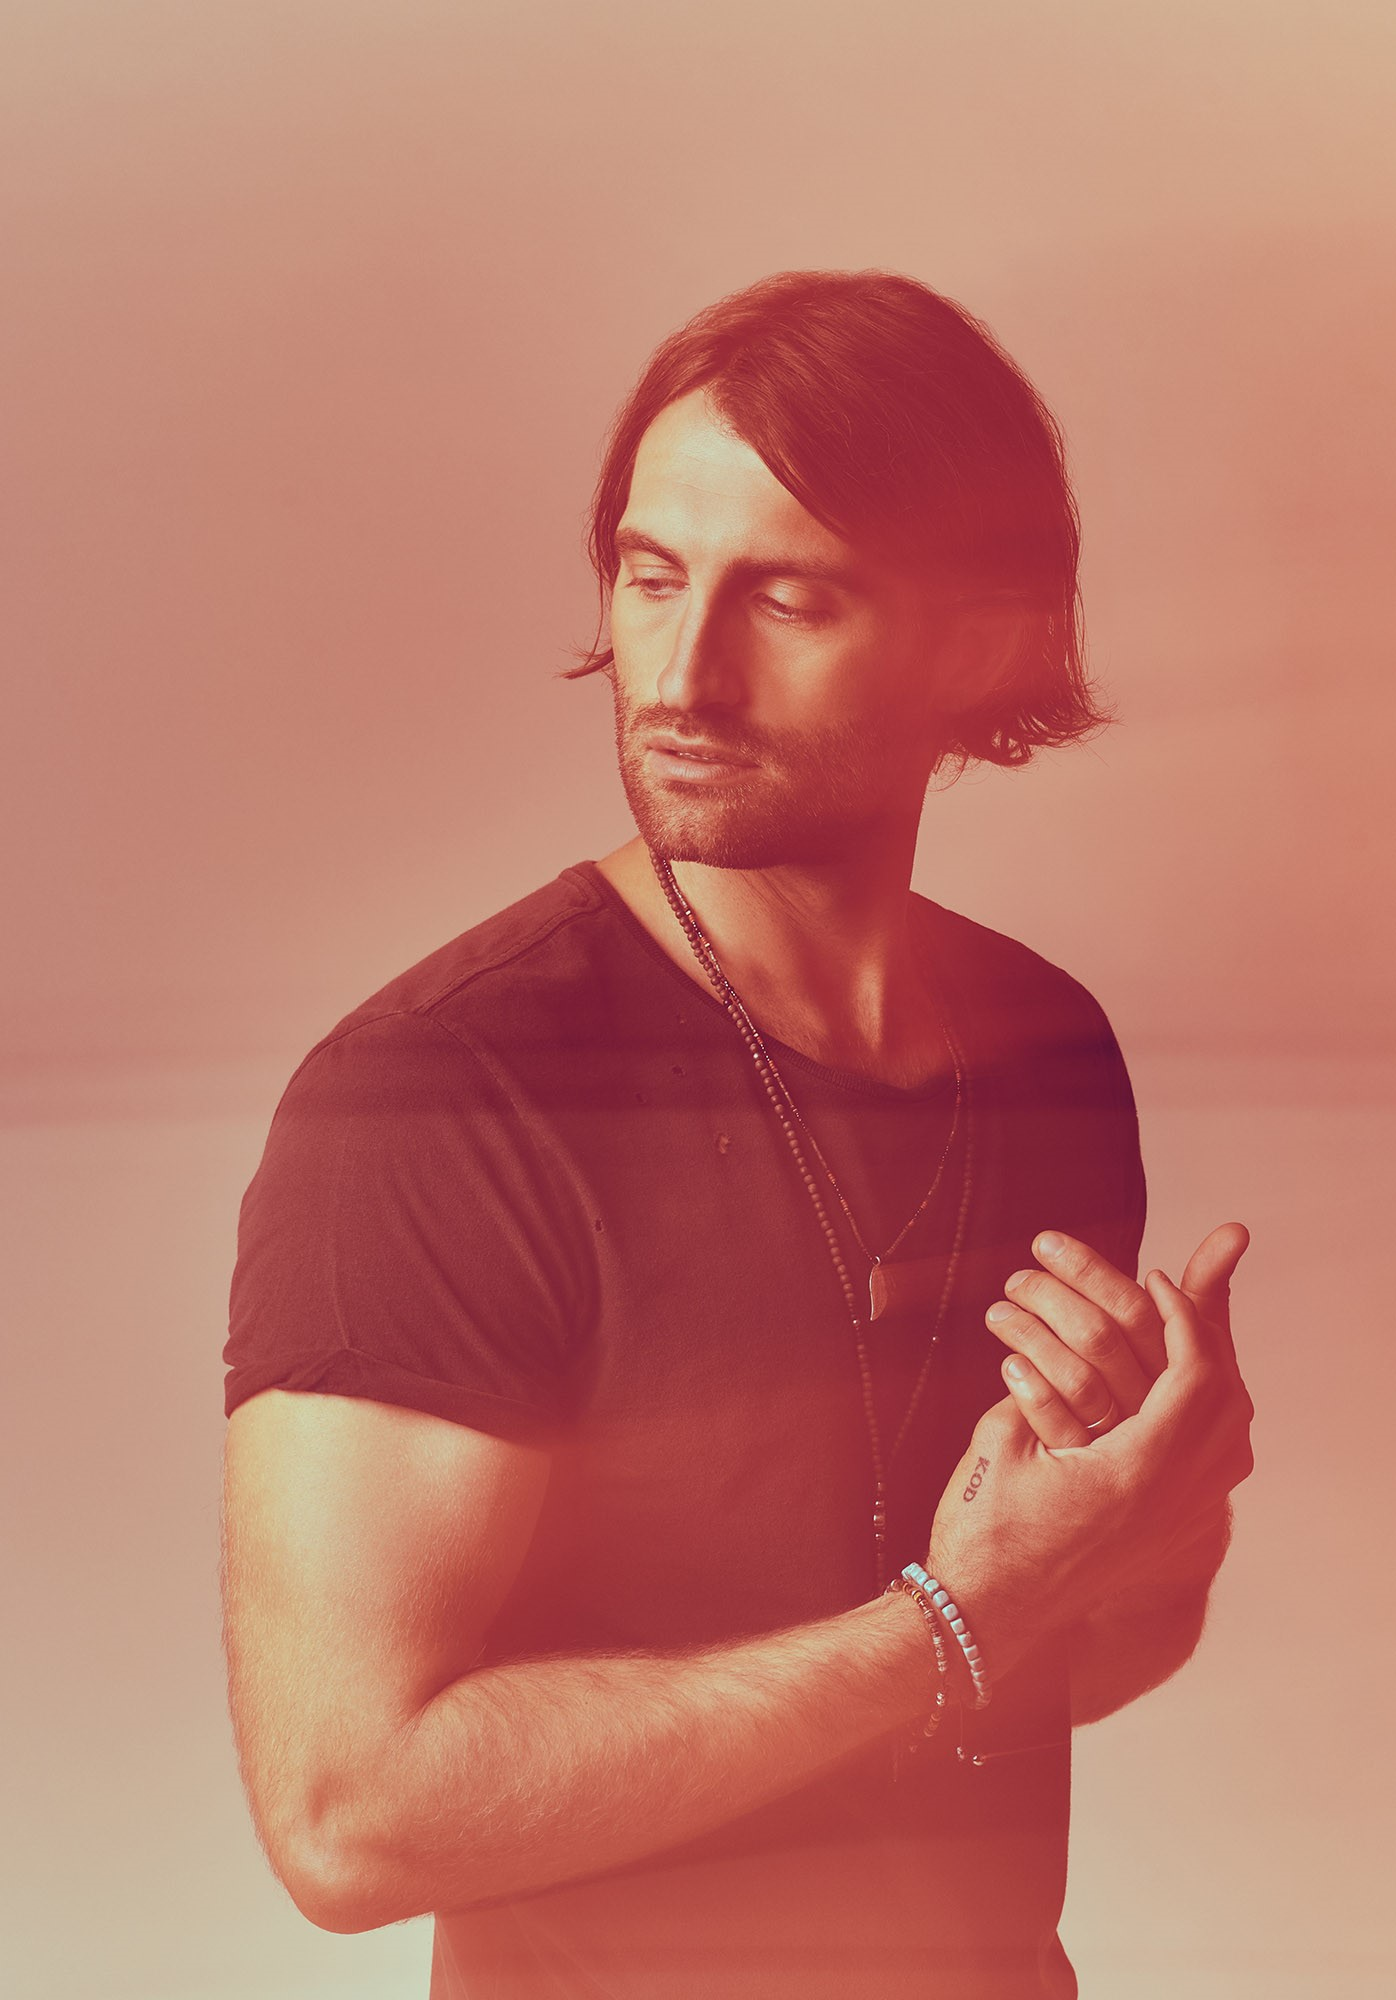 RCA RECORDS NASHVILLE ARTIST/SONGWRITER RYAN HURD RELEASES FIVE-SONG PLATONIC EP TODAY